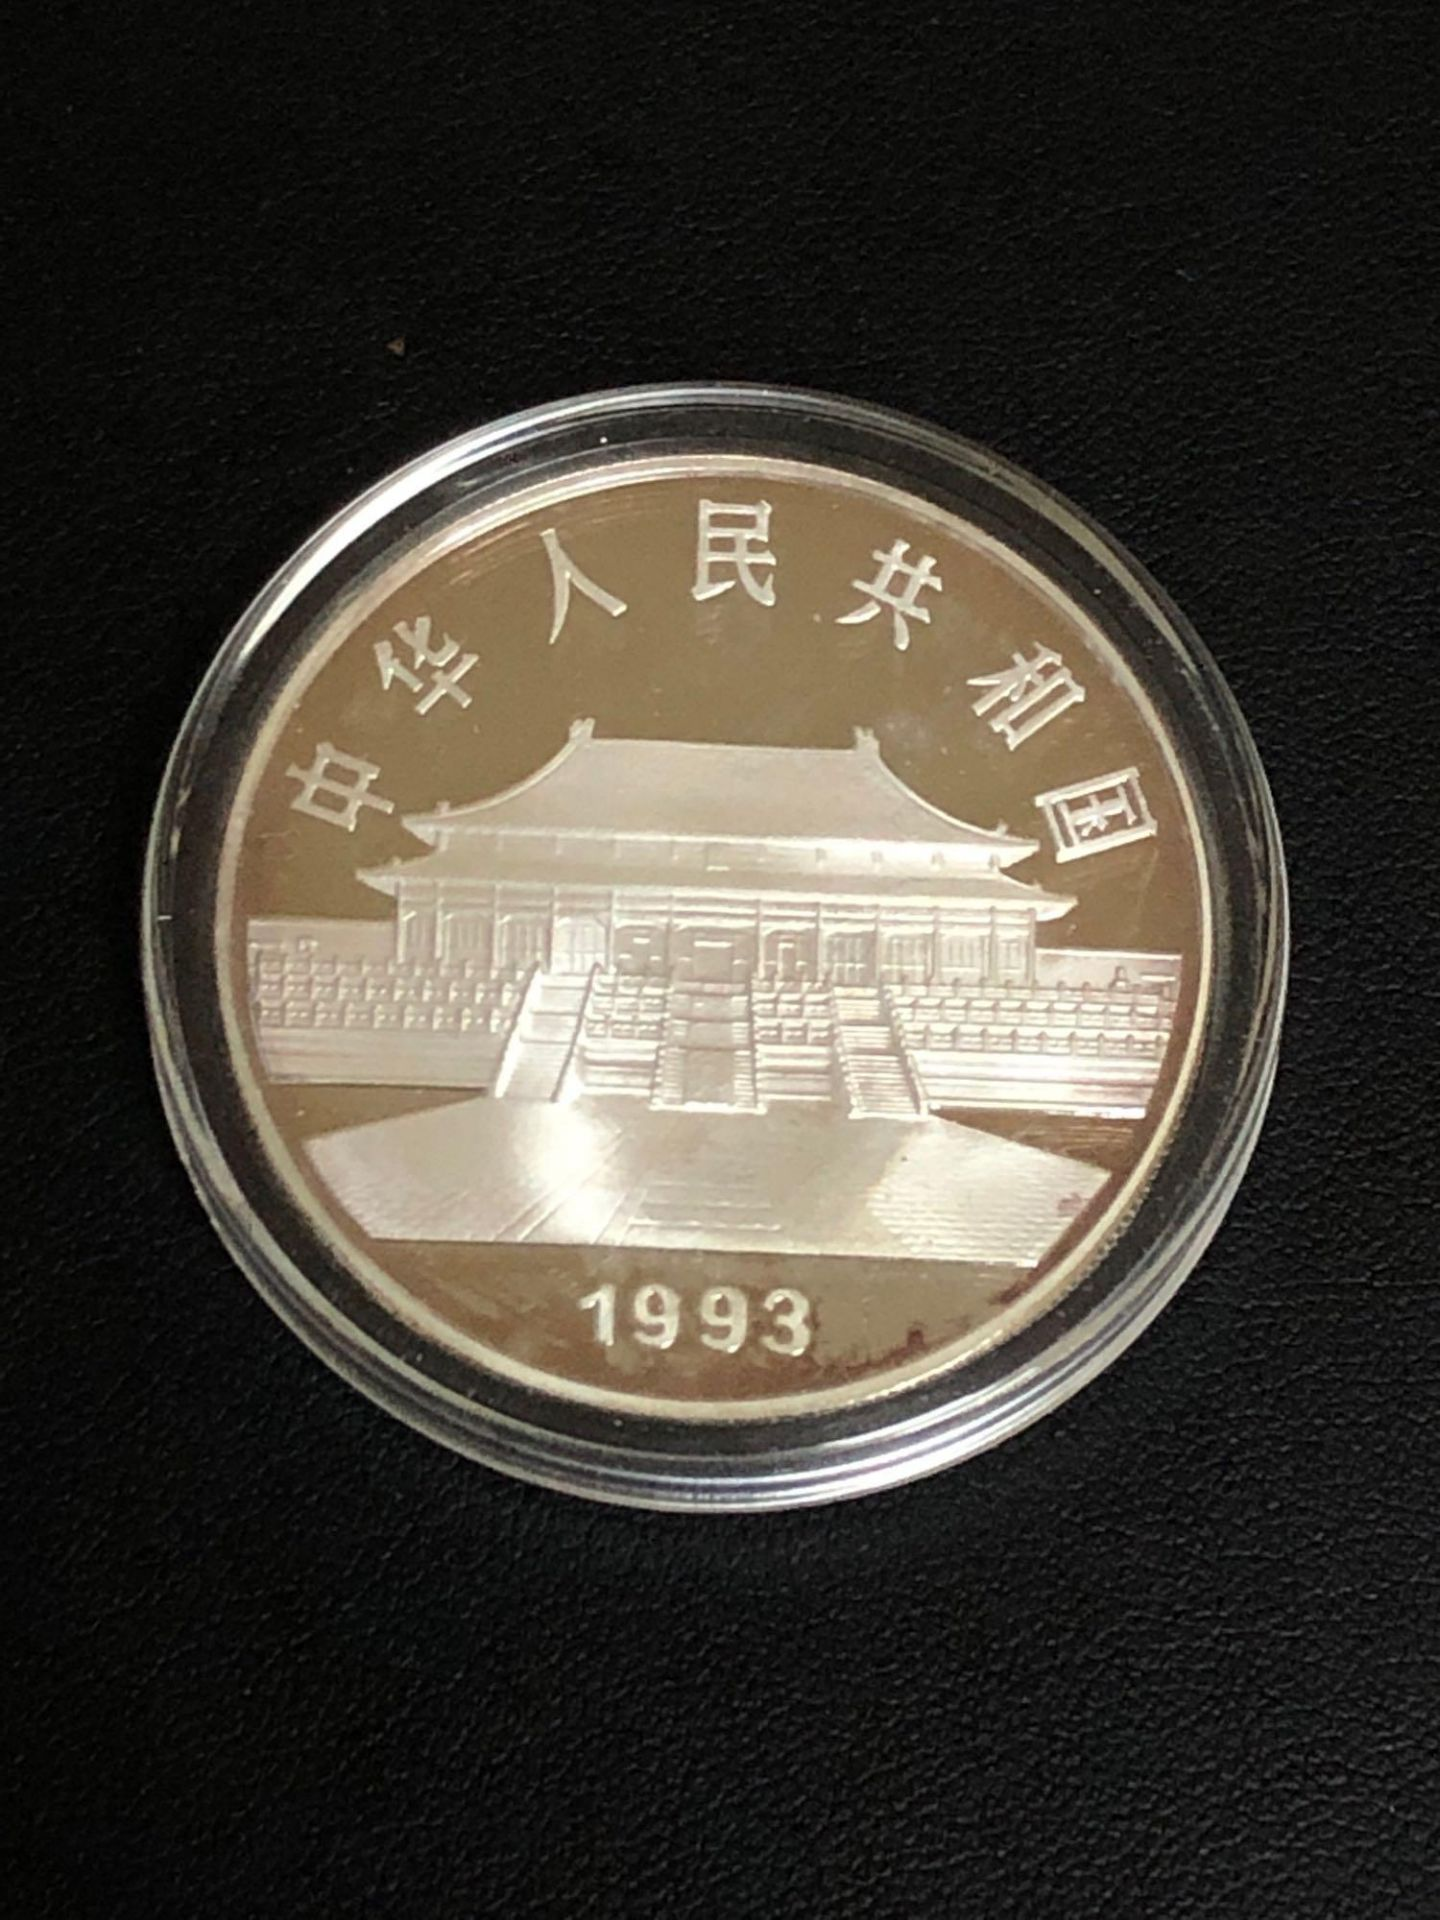 1993 1 OZT .999 FINE SILVER CHINESE COIN